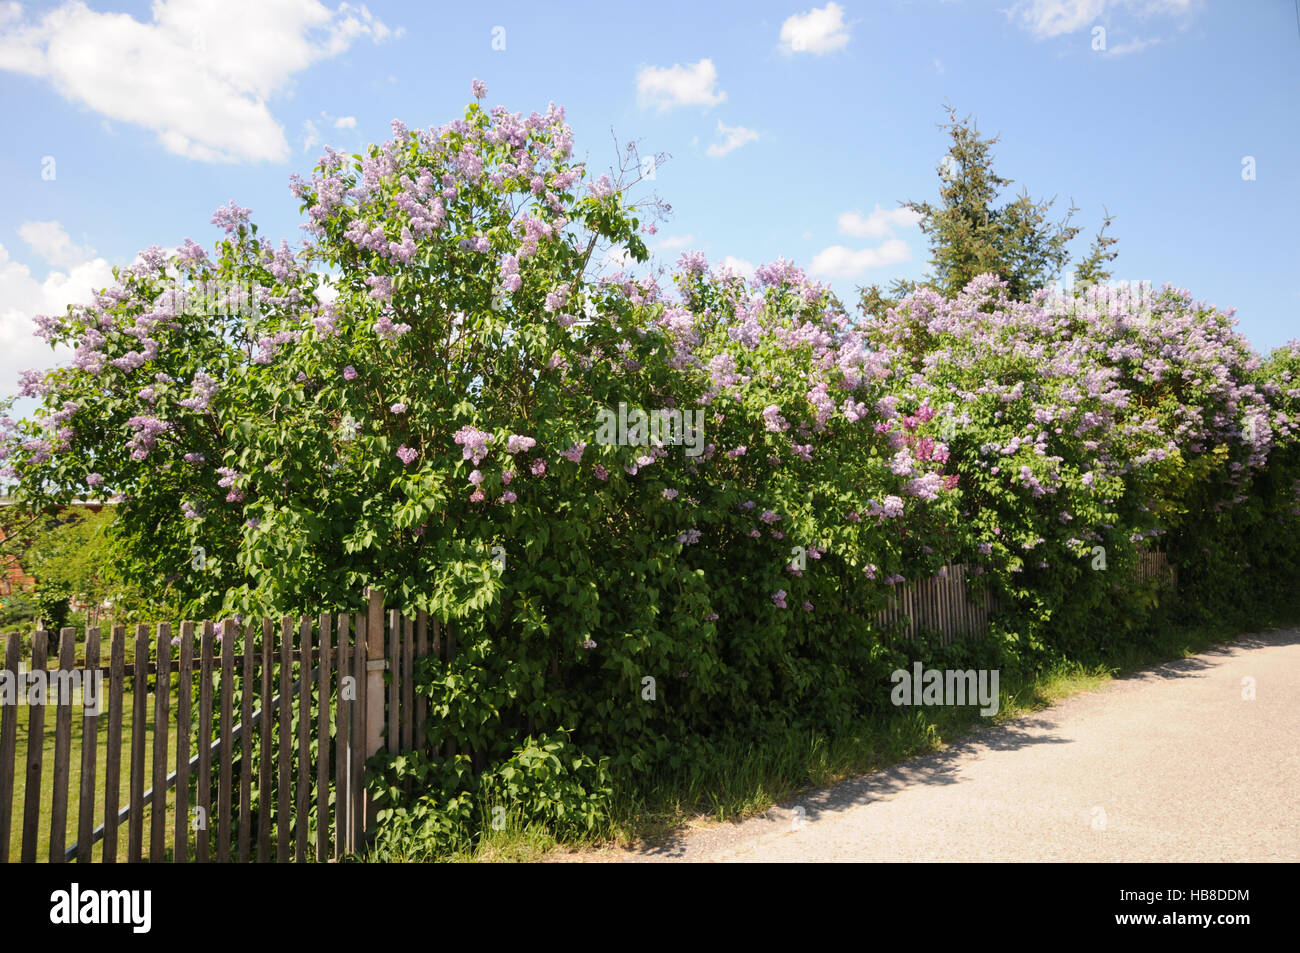 syringa vulgaris lilac hedge stock photo royalty free image 127419984 alamy. Black Bedroom Furniture Sets. Home Design Ideas